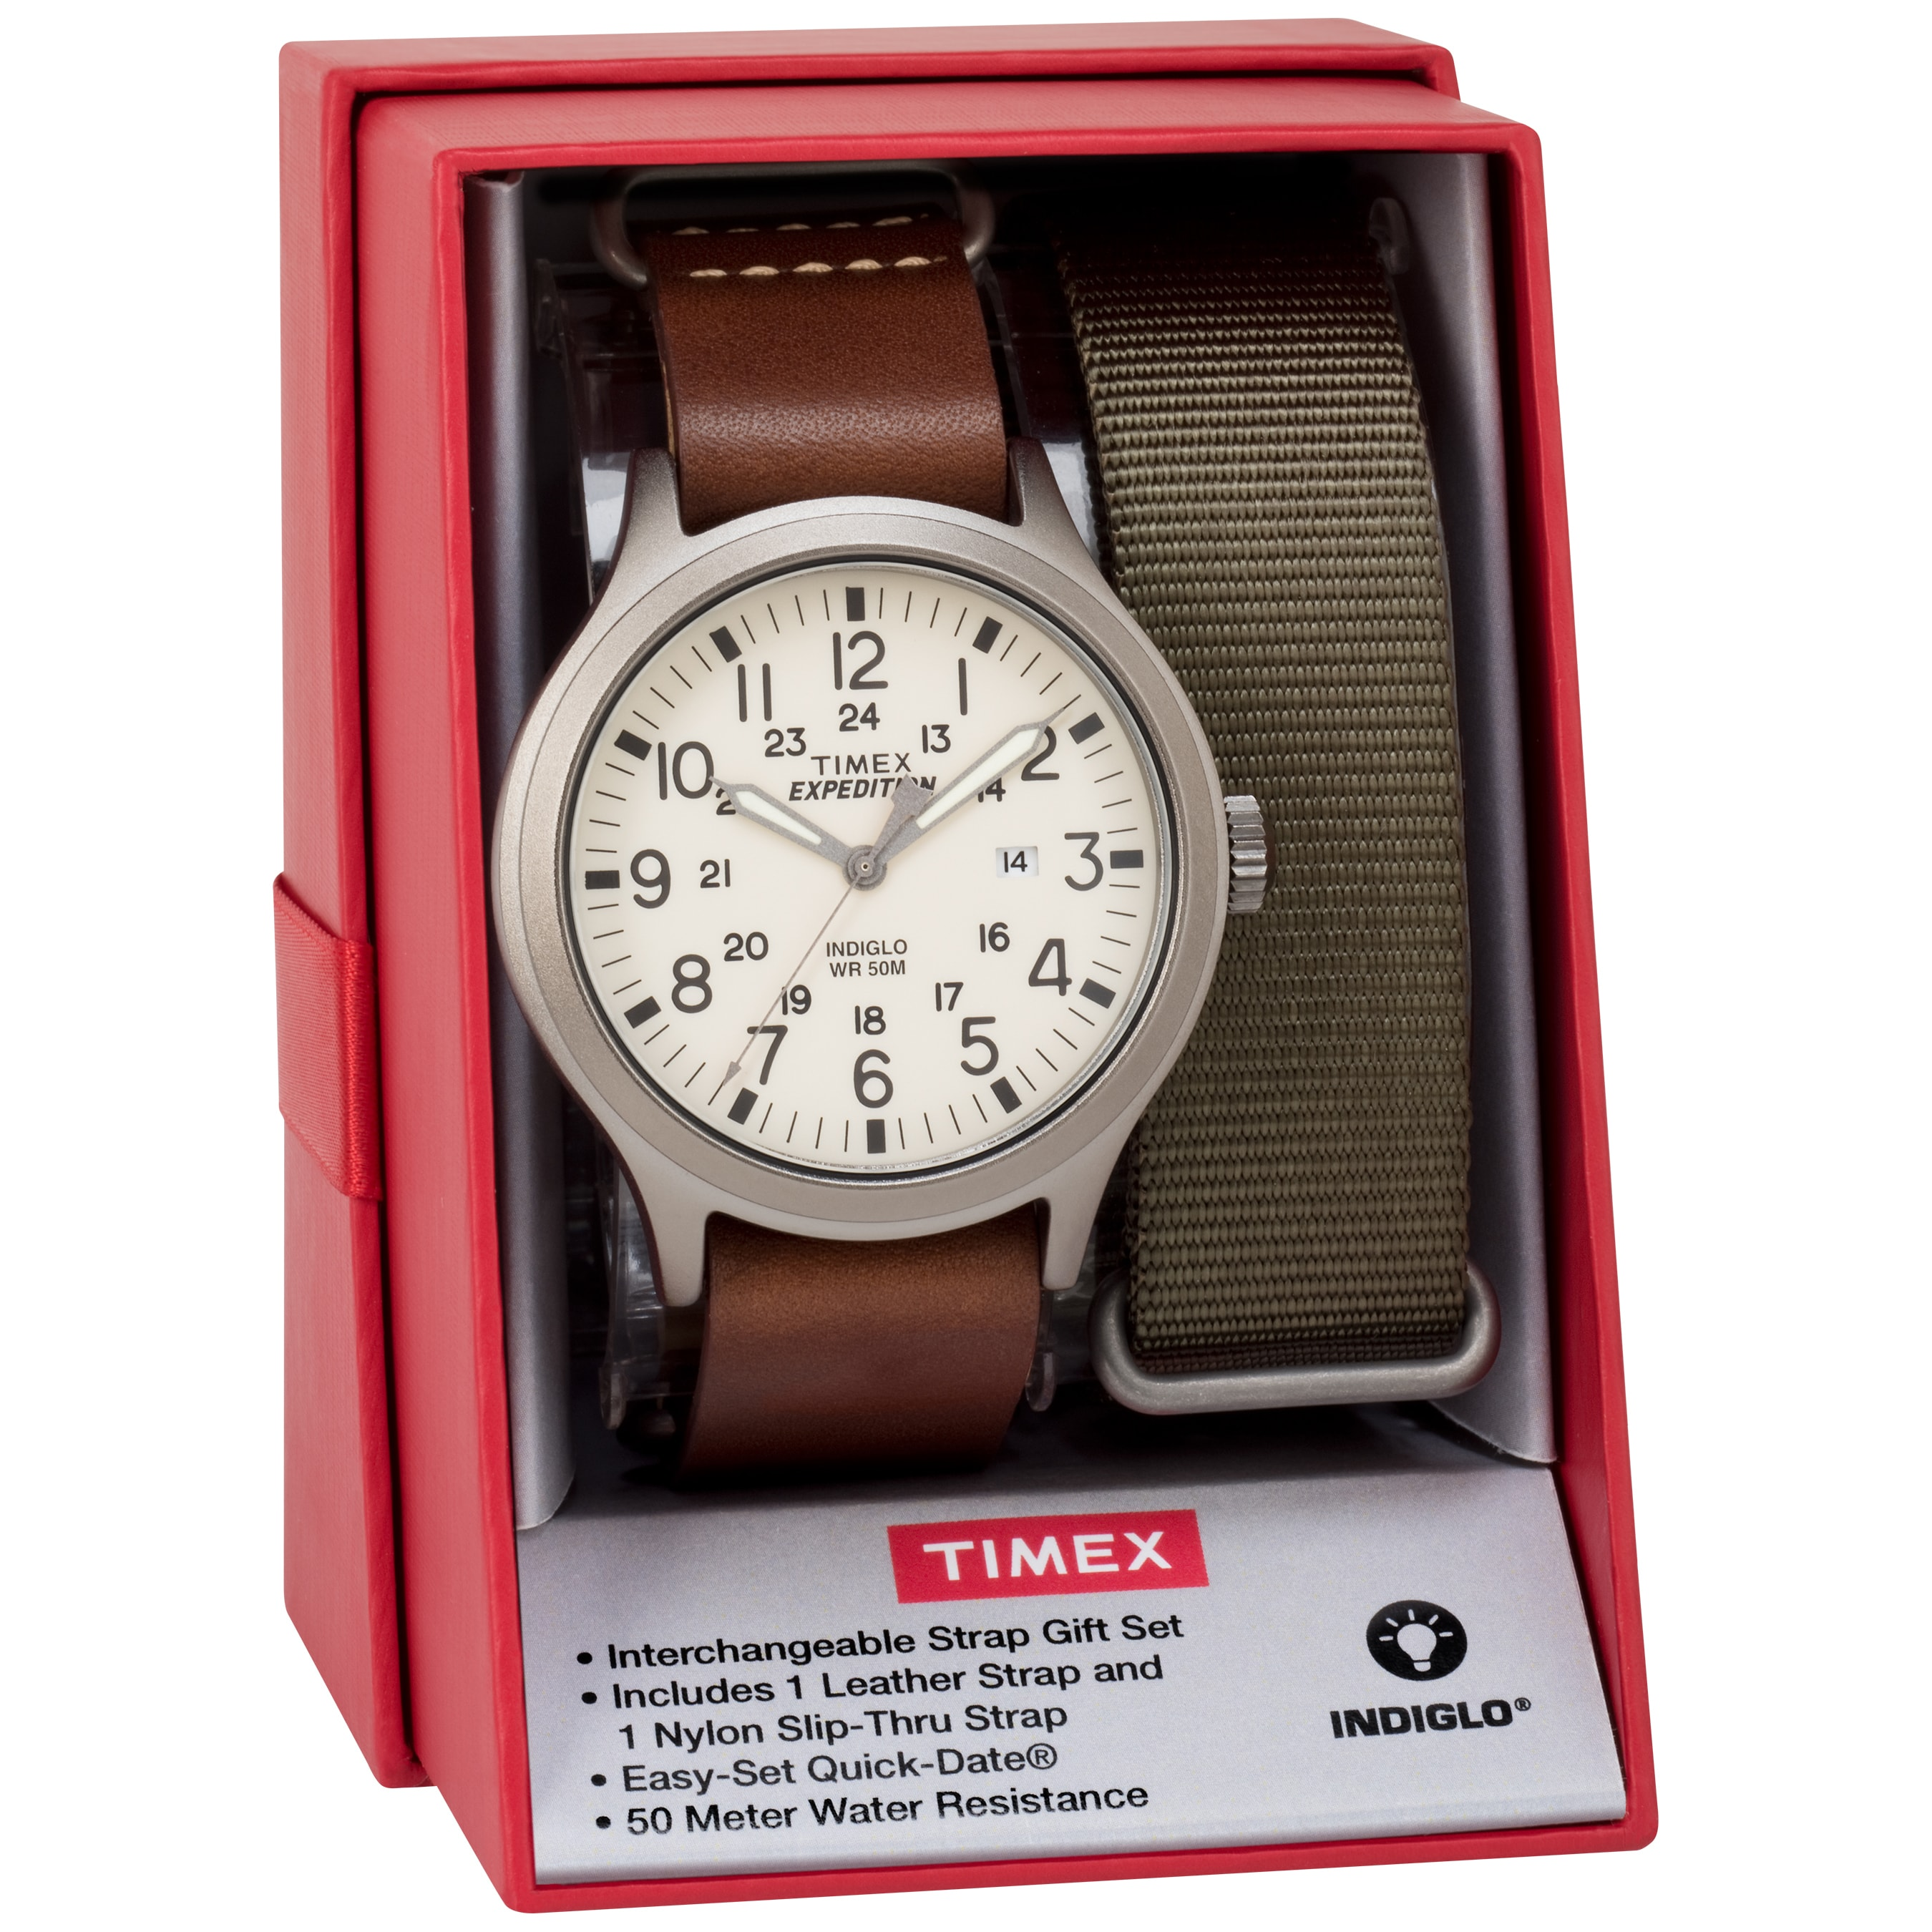 48675d25e Shop Timex Men's TWG016100 Expedition Scout 43 Brown Leather Slip-Thru  Strap Watch Gift Set + Olive Nylon Strap - Free Shipping Today - Overstock  - 16765927